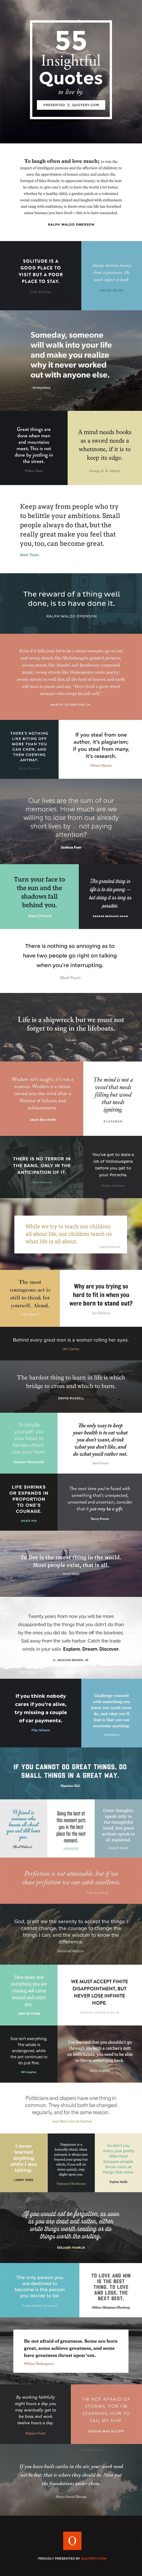 Spend few minutes on this. 55 insightful quotes to live by, presented on an infographic.